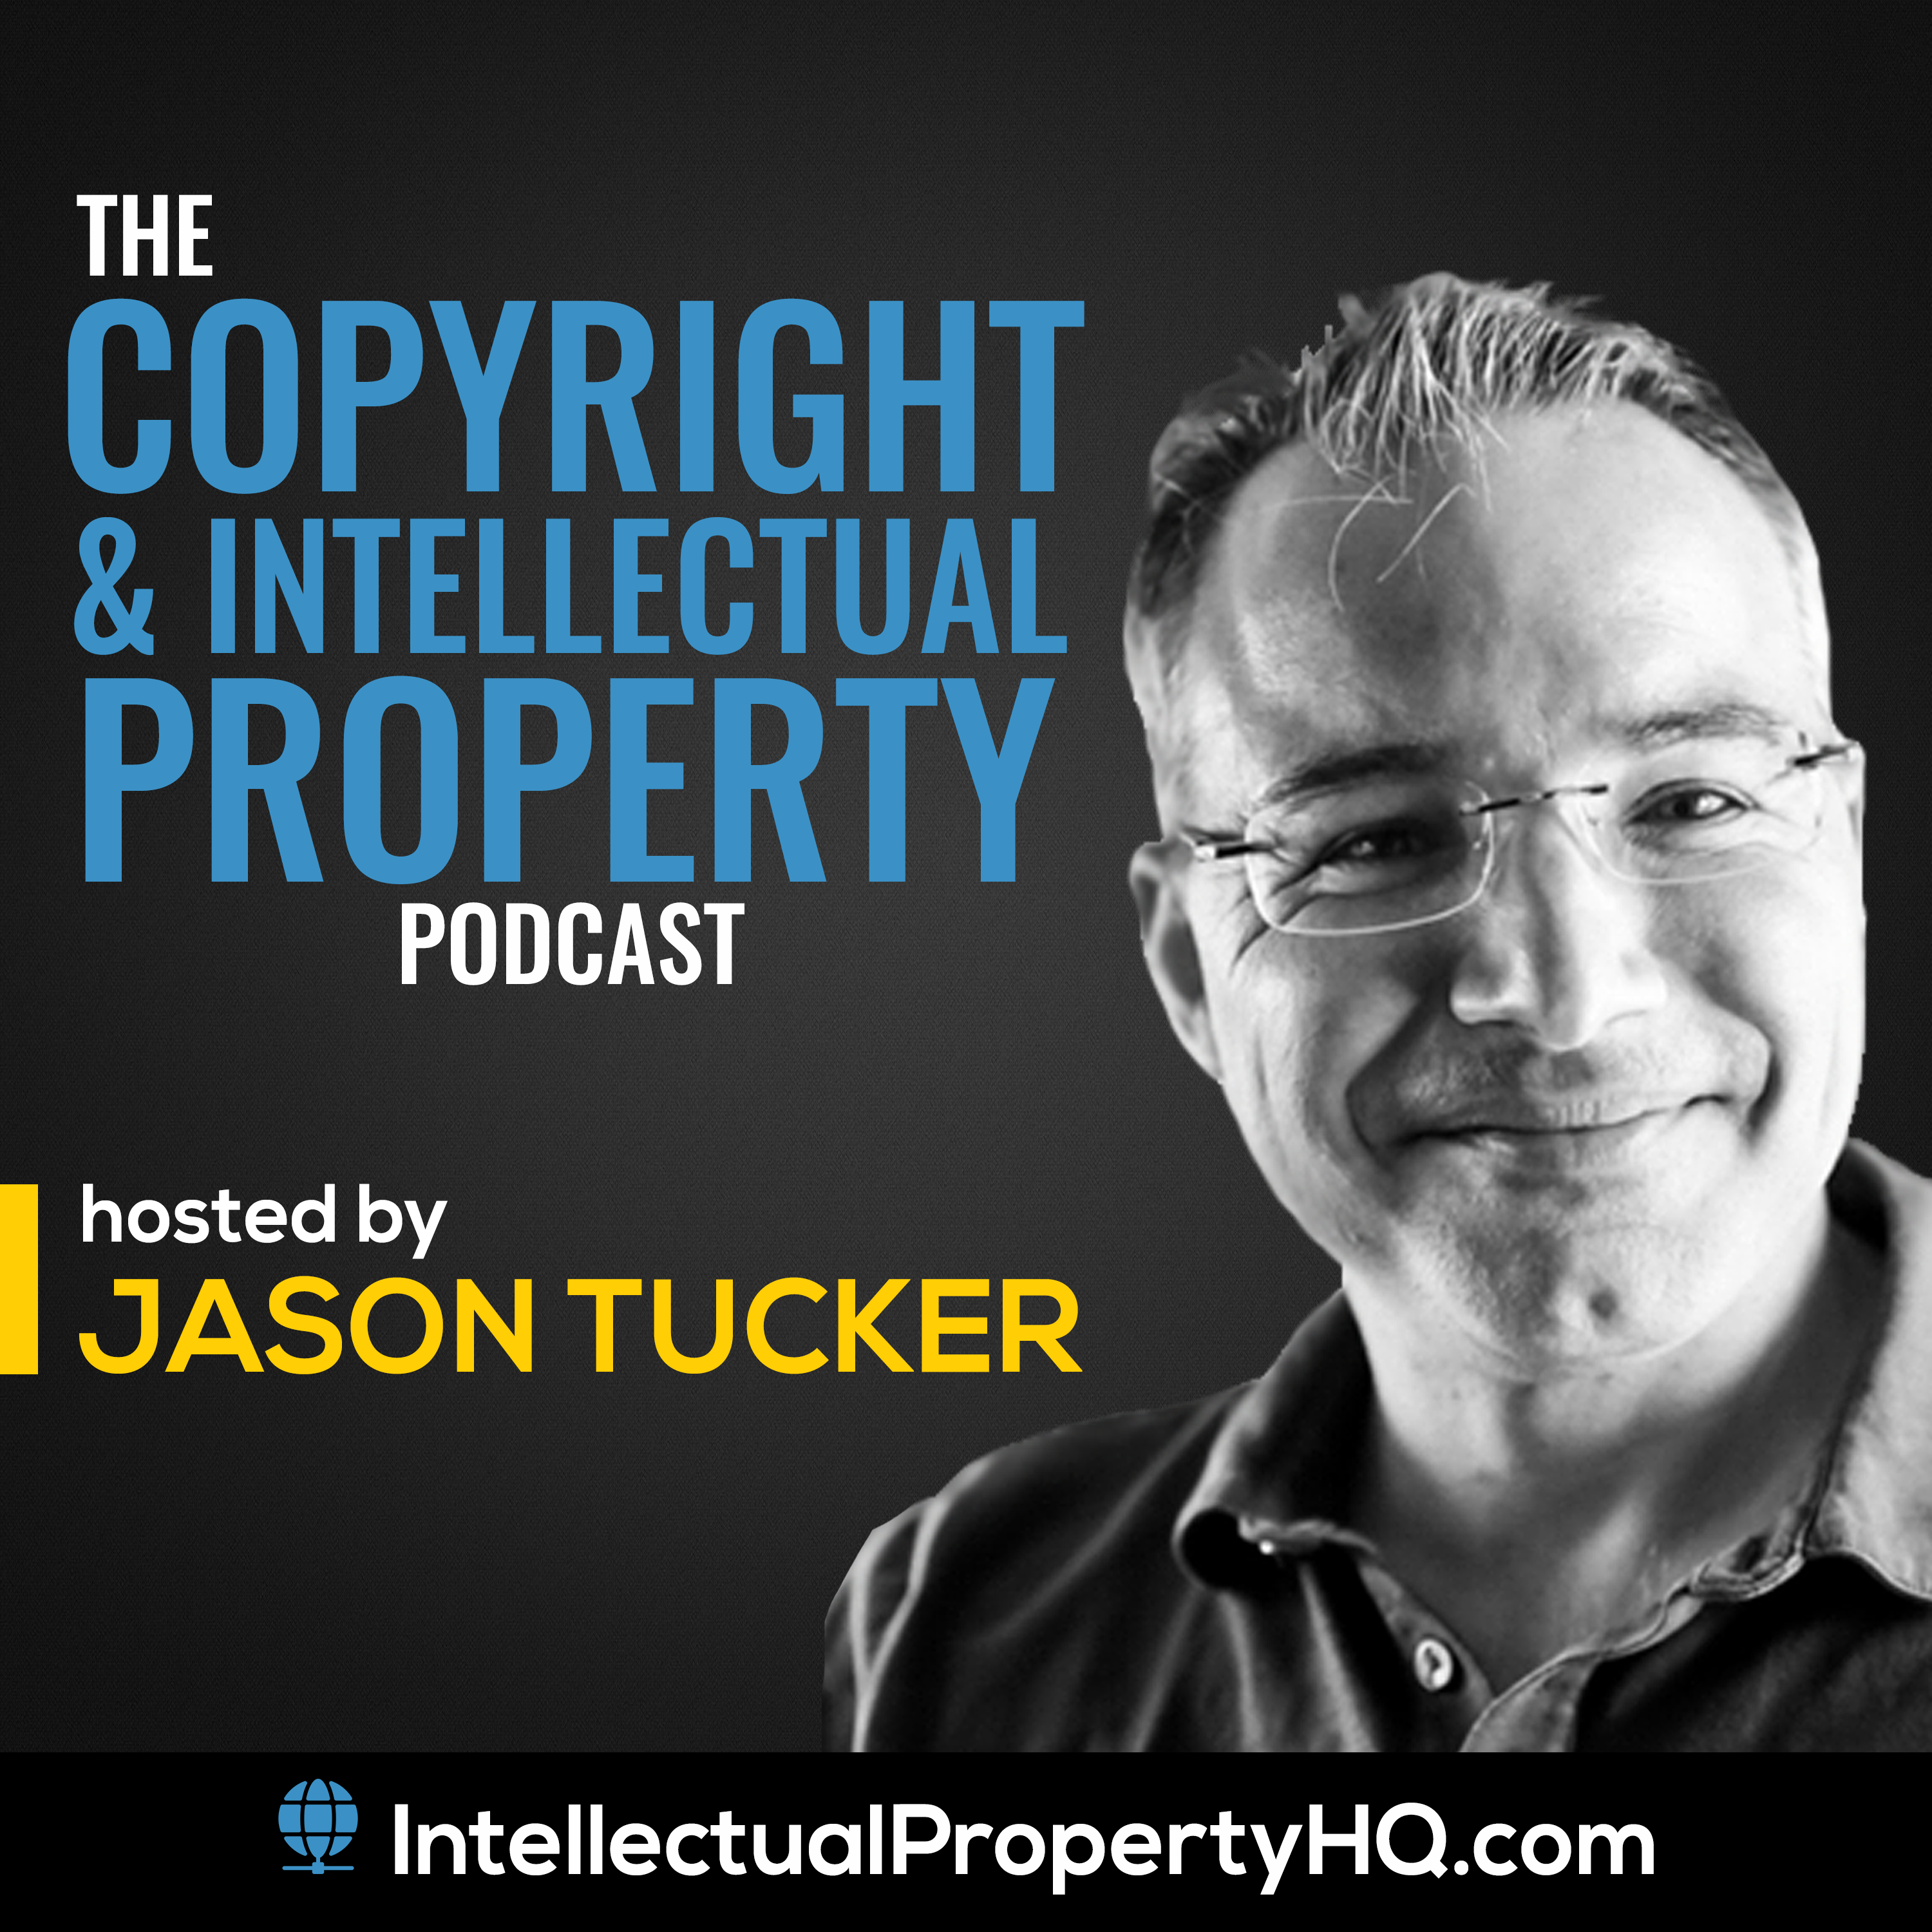 Copyright & Intellectual Property Podcast show art